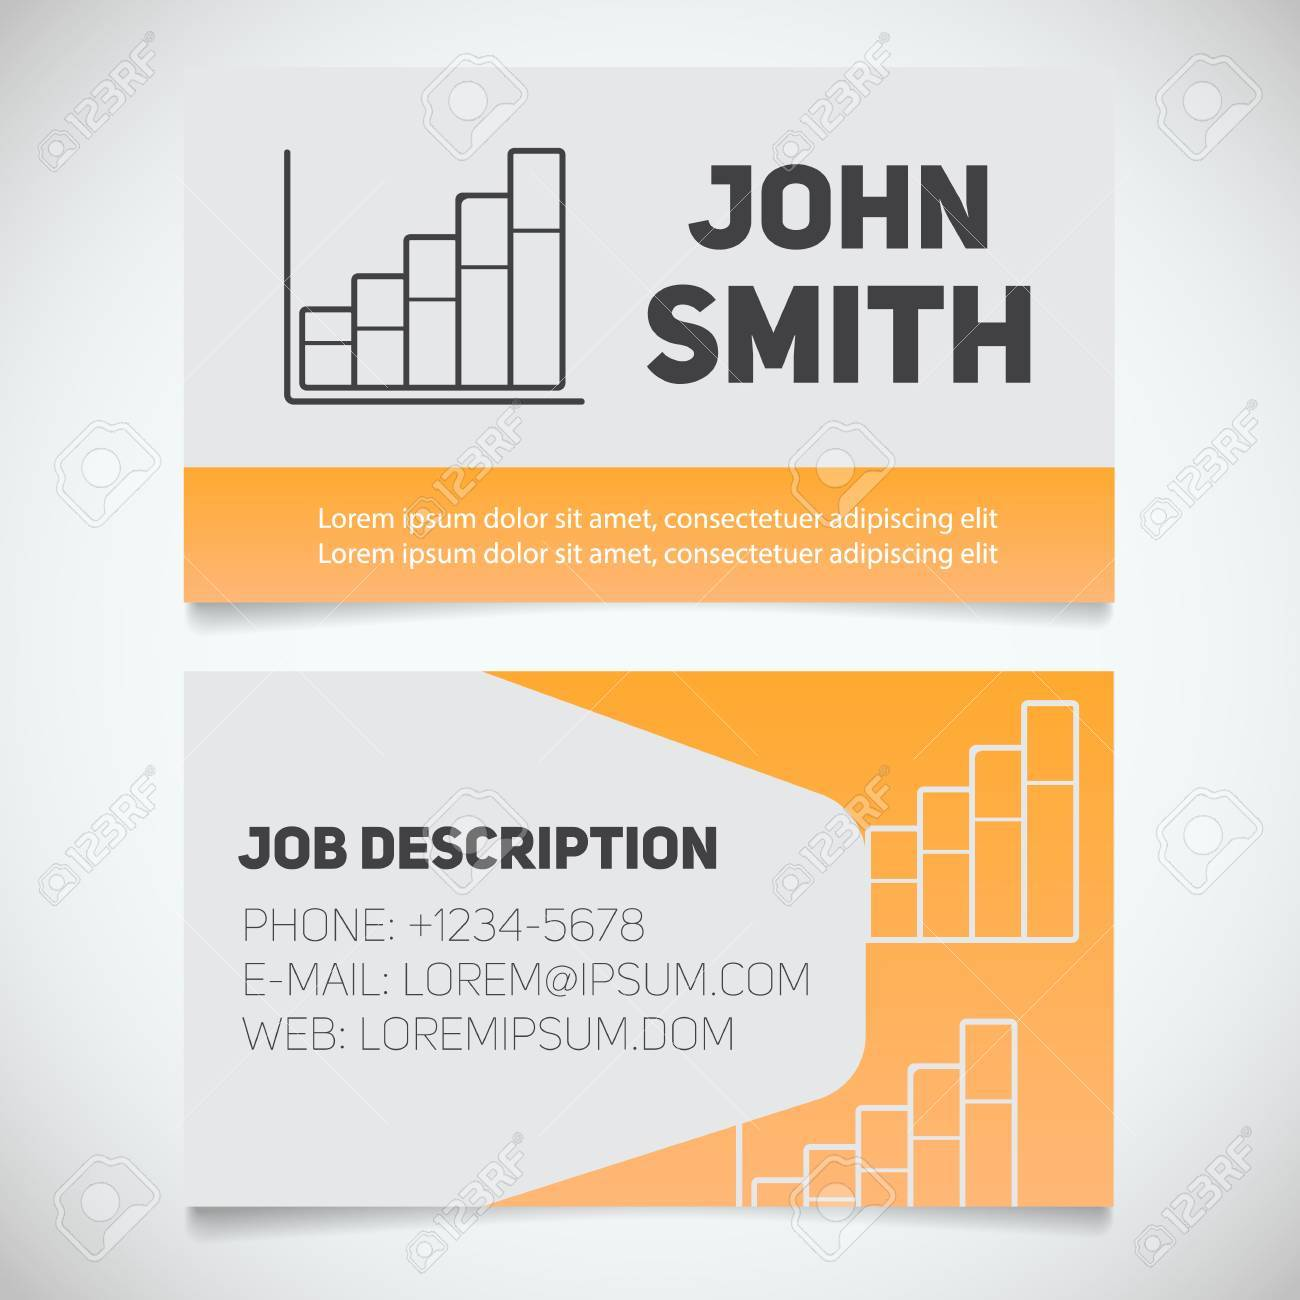 Business Card Print Template With Income Growth Chart Logo Easy Edit Marketer Stockbroker